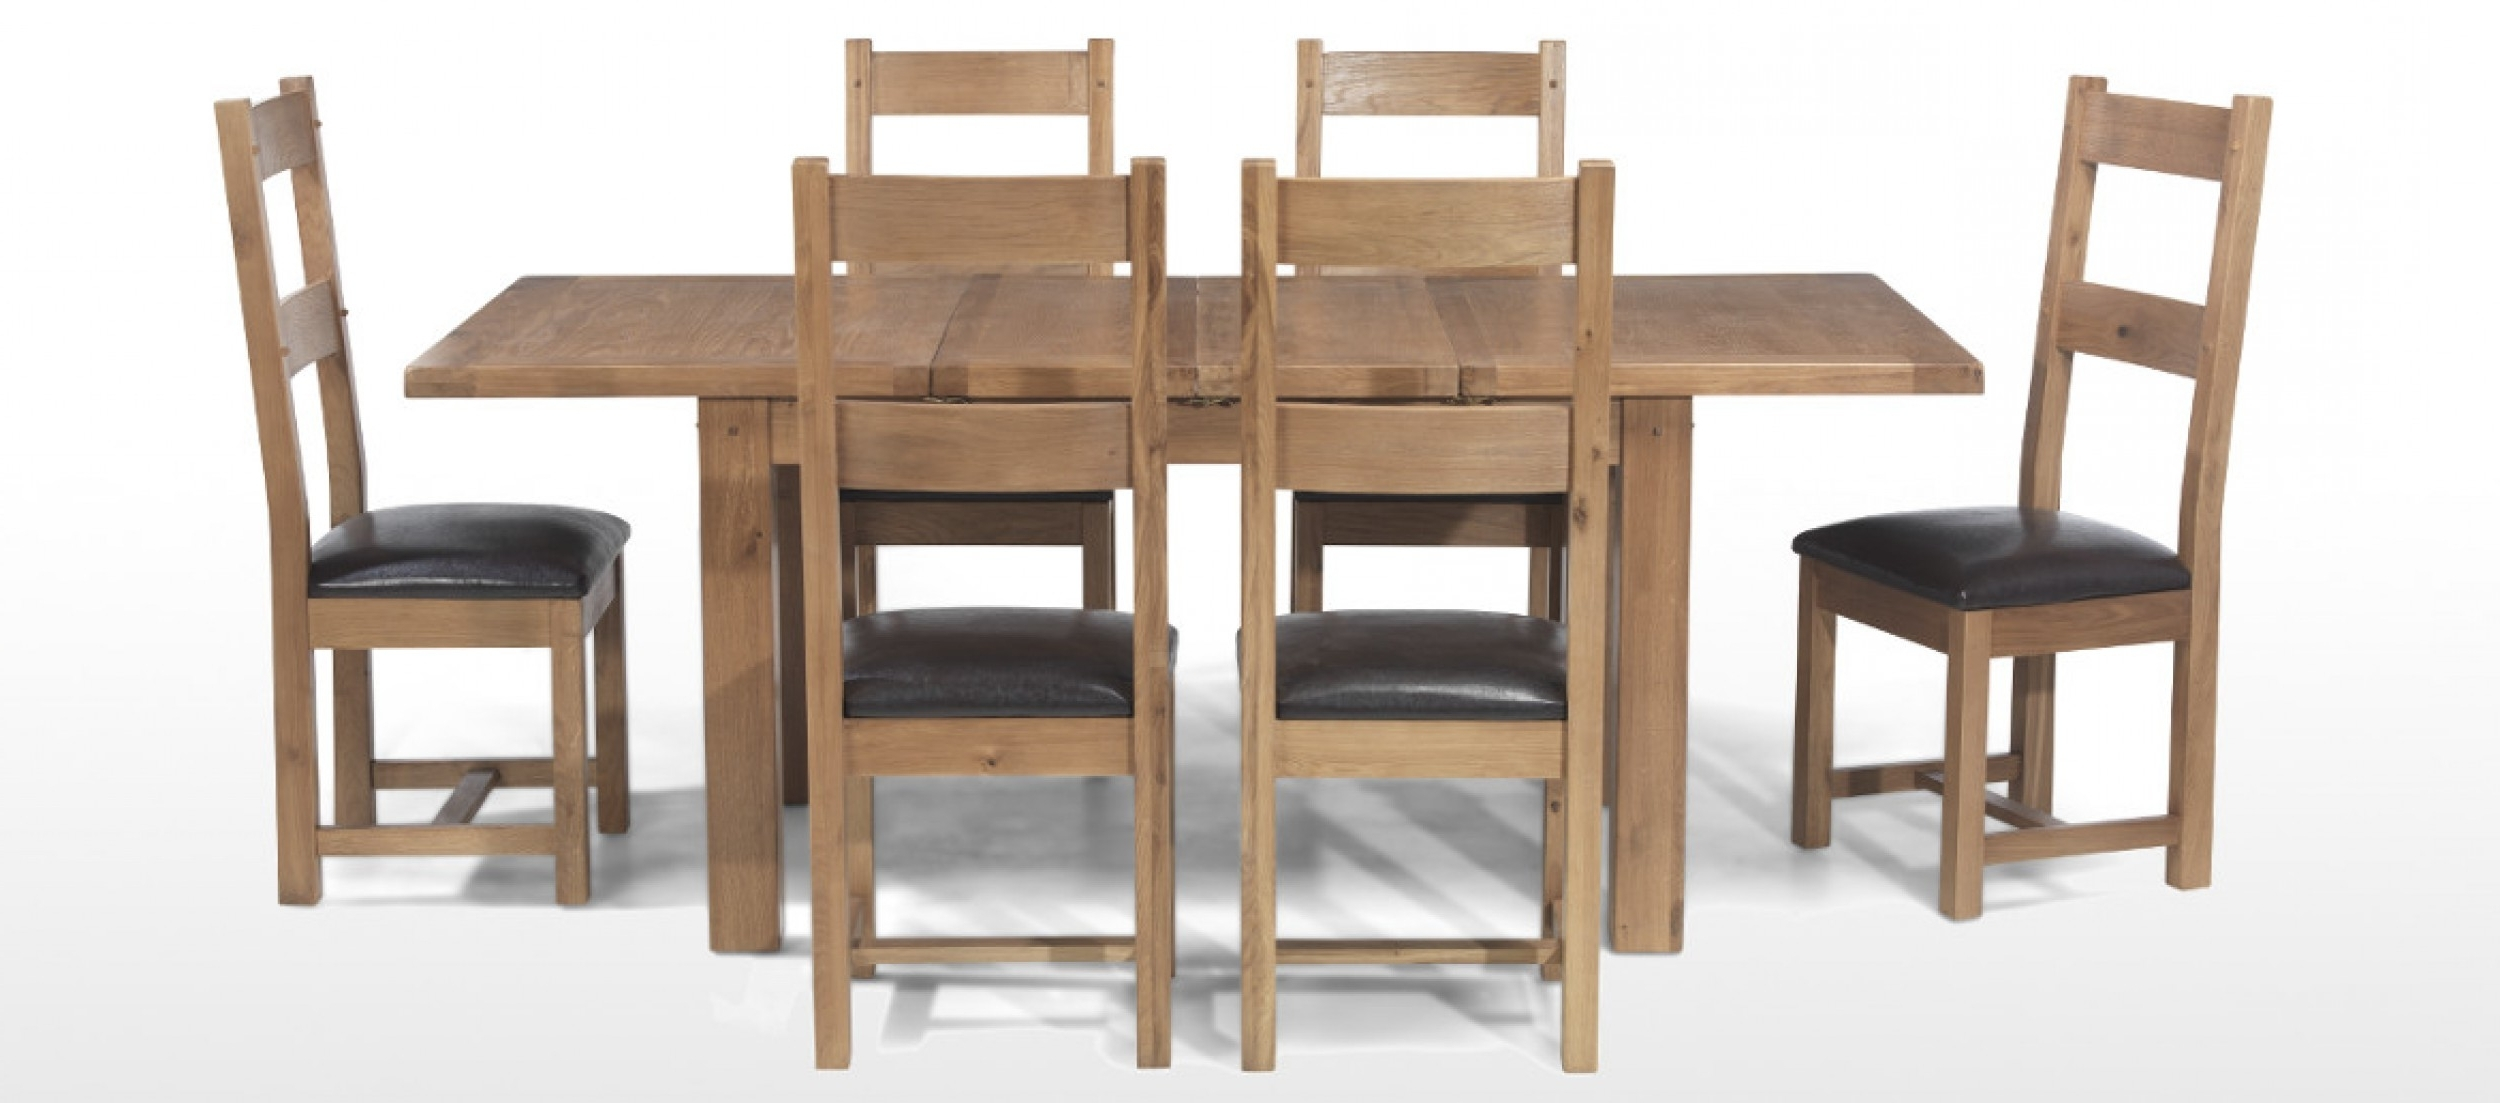 Widely Used Extendable Dining Tables With 6 Chairs Throughout Rustic Oak 132 198 Cm Extending Dining Table And 6 Chairs (View 3 of 25)